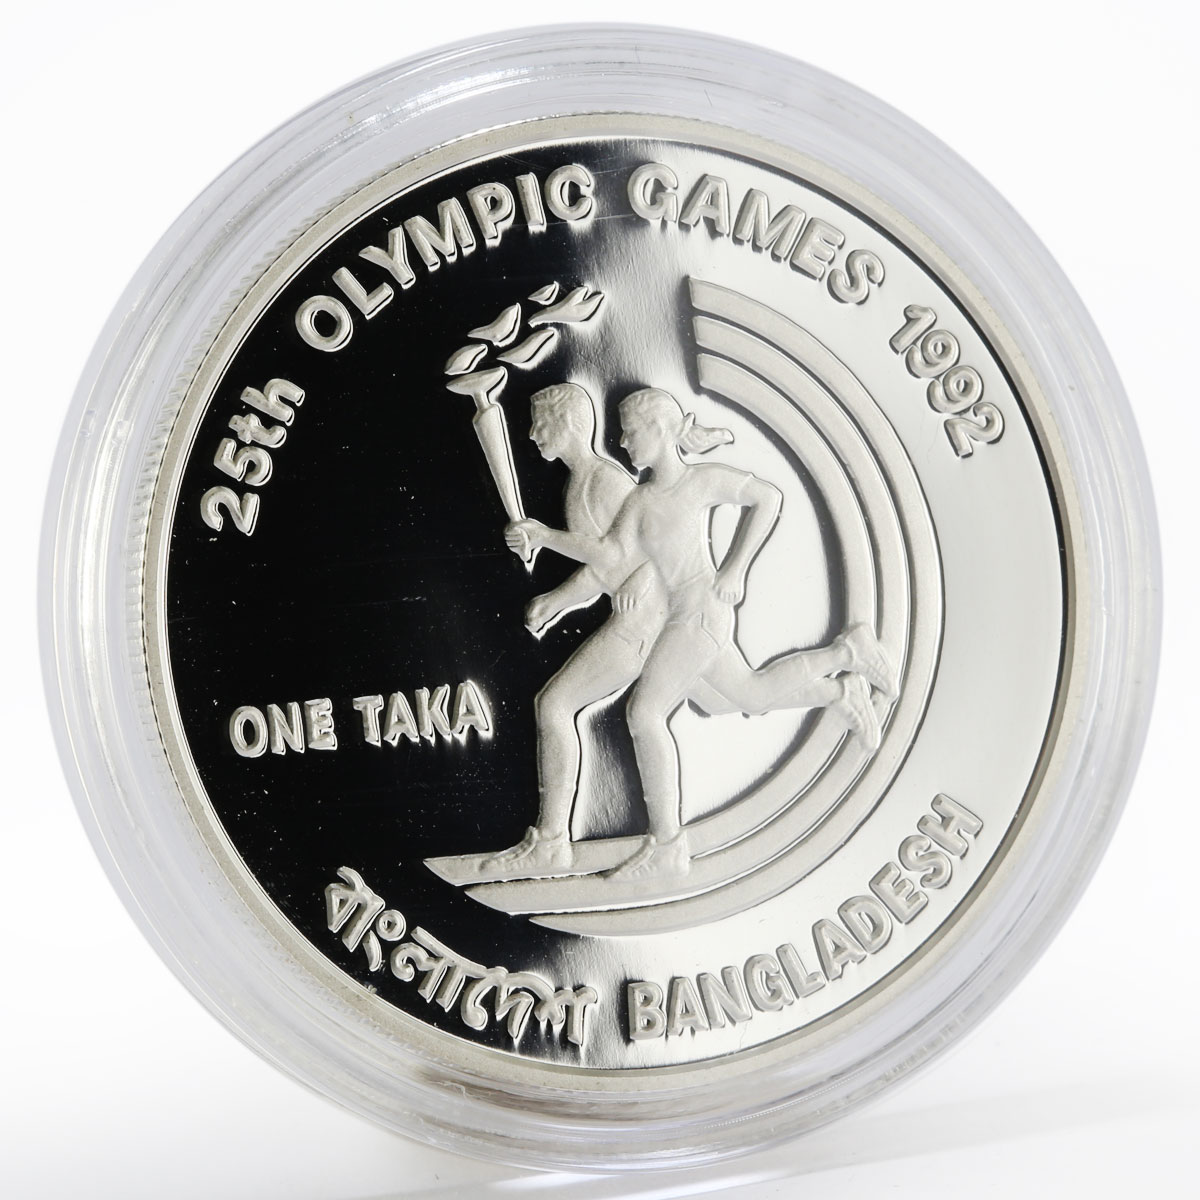 Bangladesh 1 taka 25th Olympic games Barcelona proof silver coin 1992